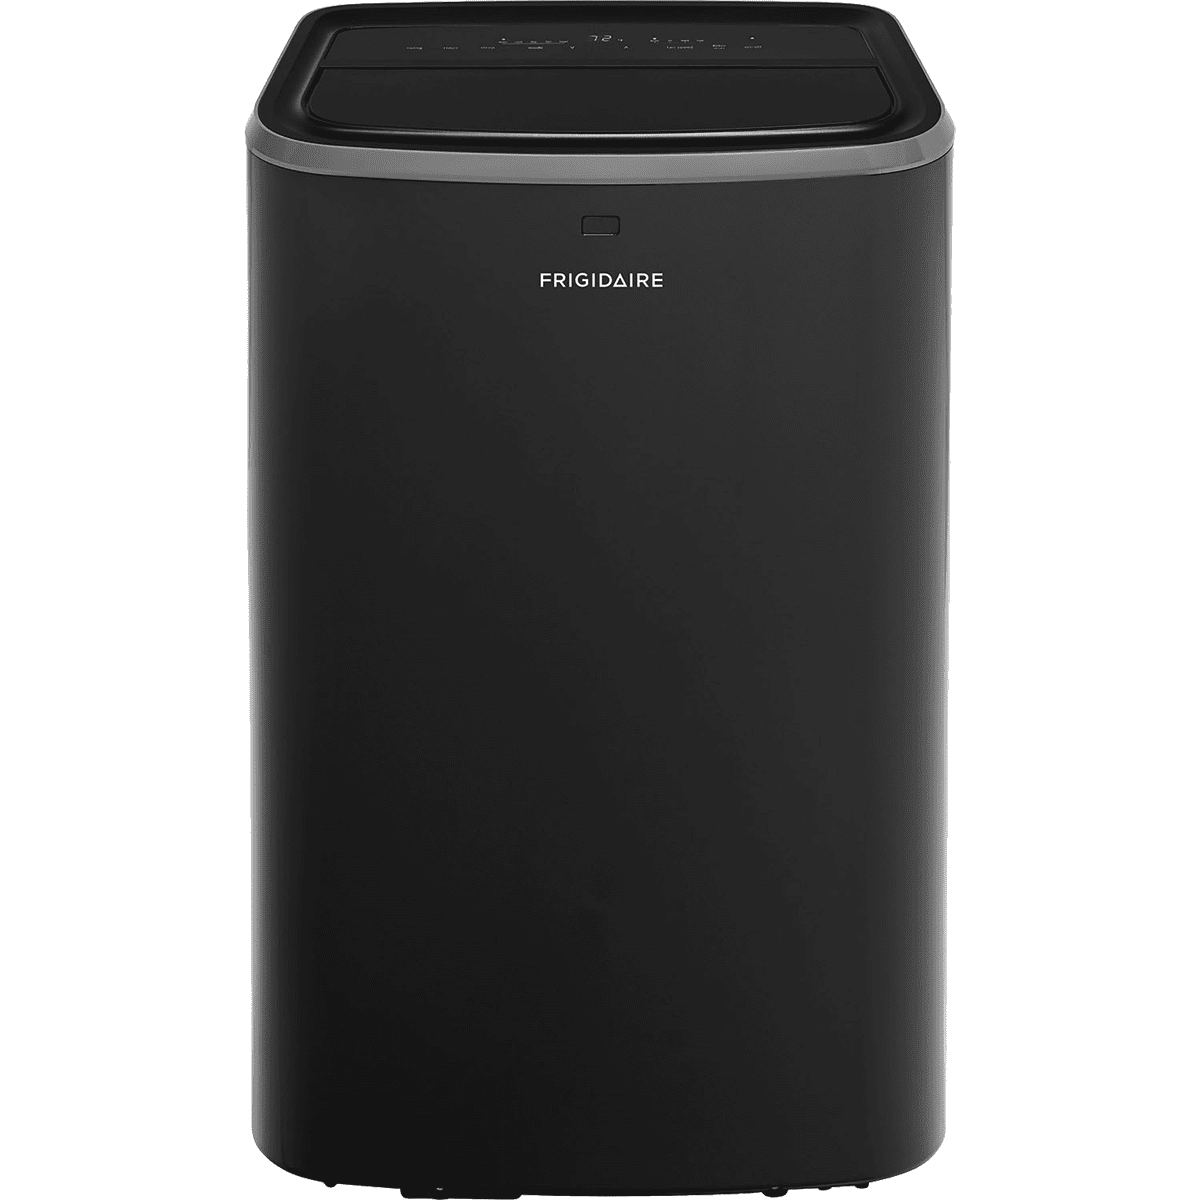 Frigidaire FFPH1422U1 14,000 BTU Portable Air Conditioner with Heat